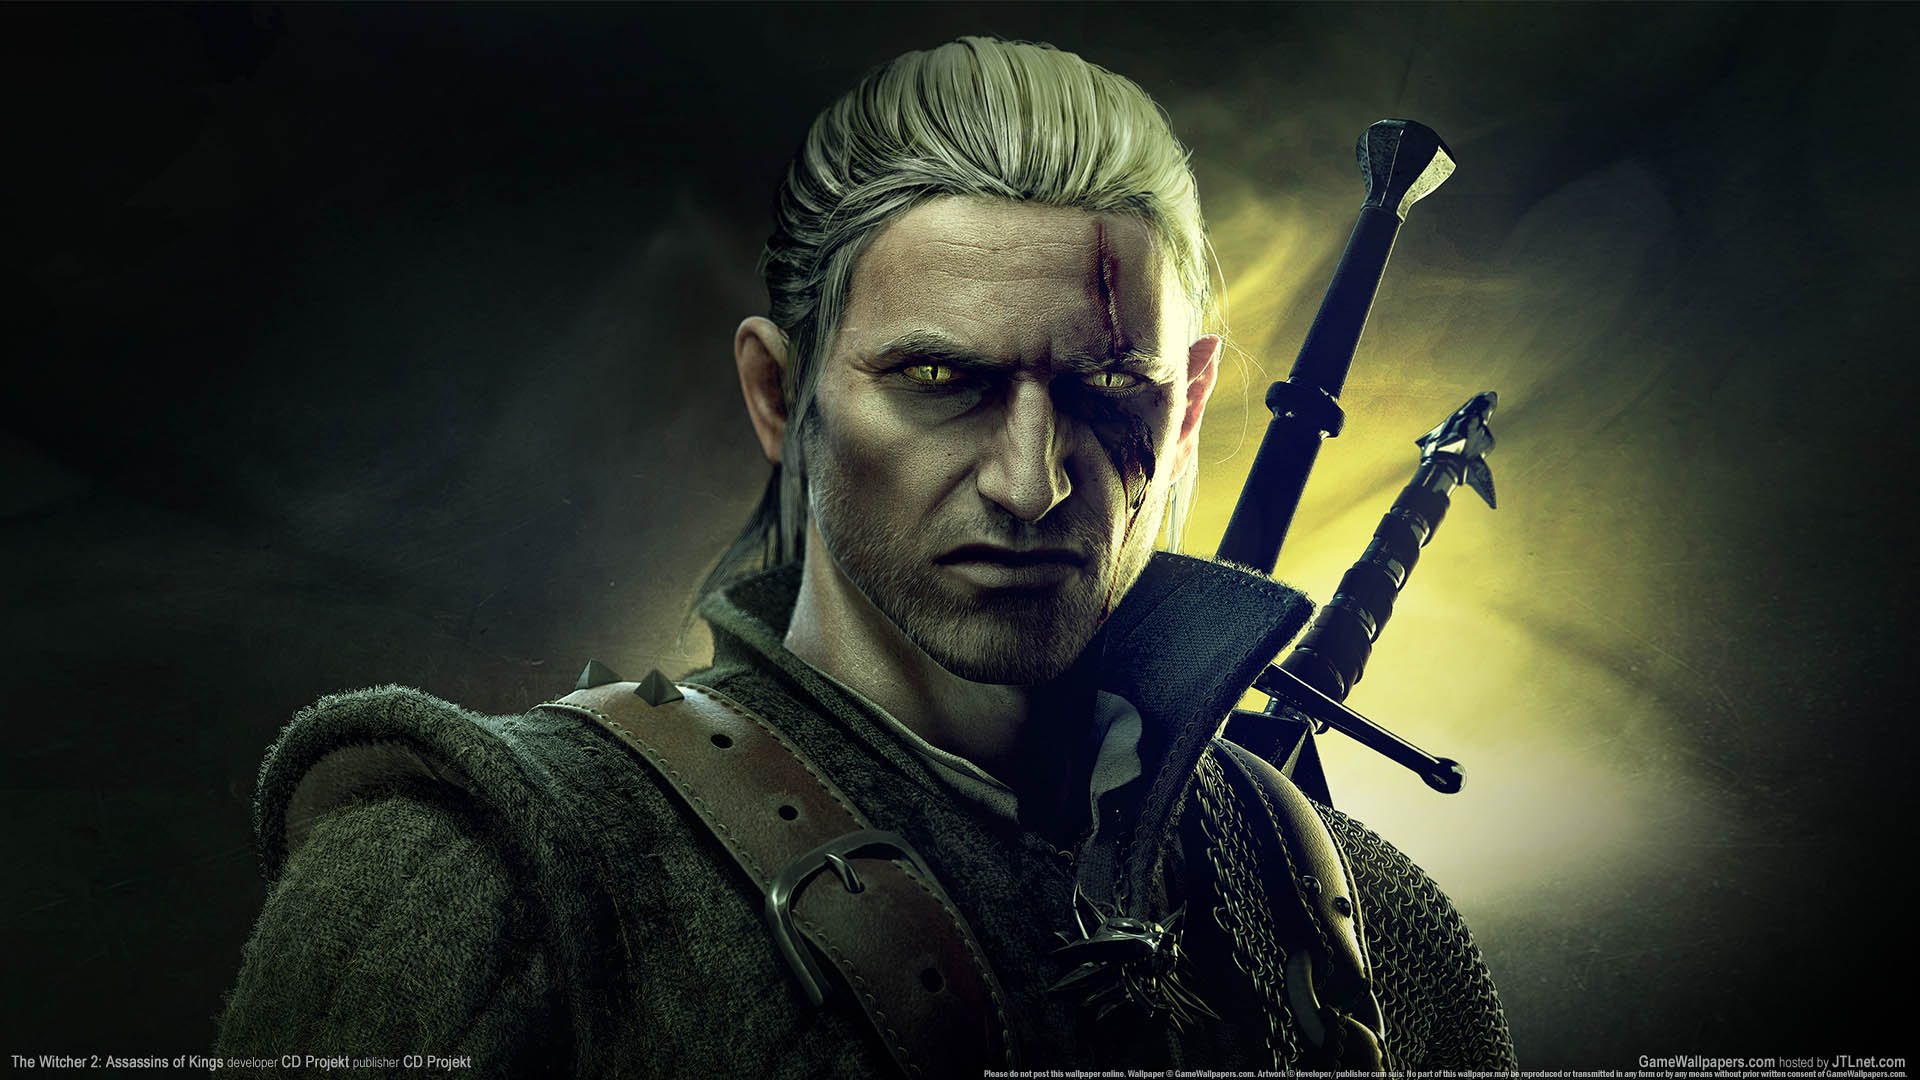 The Witcher 2: Assassins of Kings achtergrond 01 1920x1080